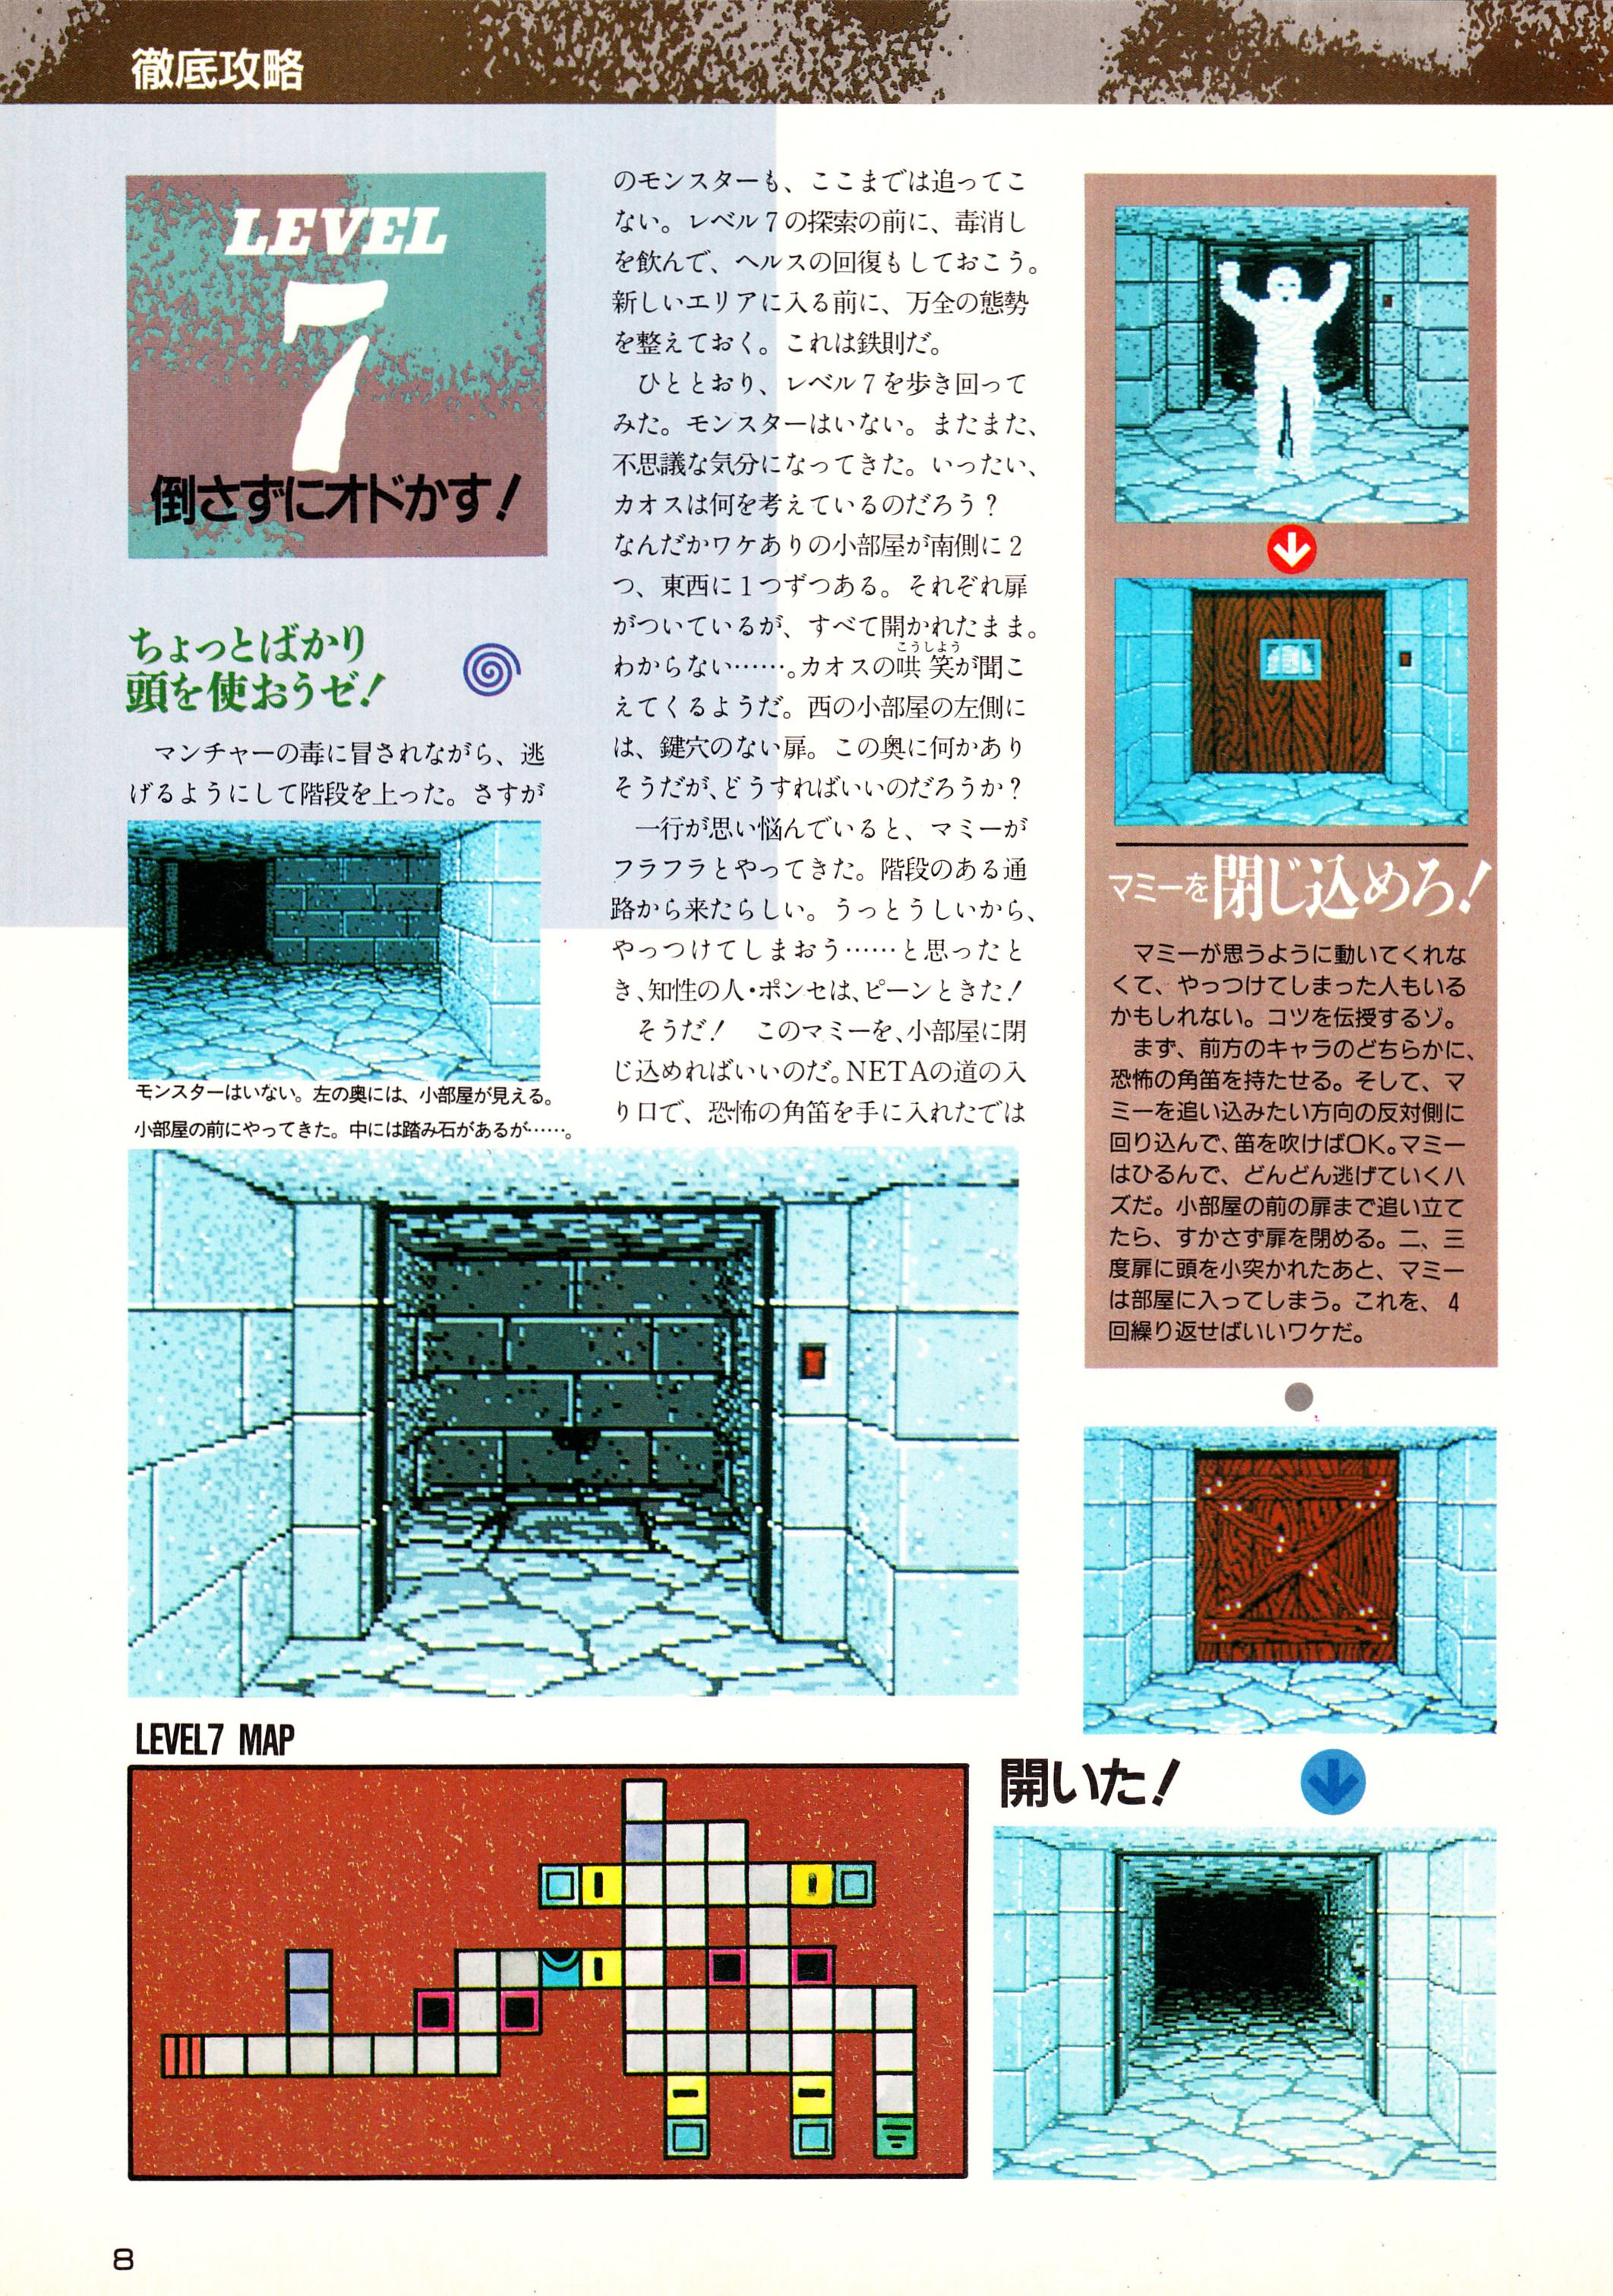 Supplement - Chaos Strikes Back Companion Guide II Guide published in Japanese magazine 'Popcom', Vol 9 No 3 01 March 1991, Page 10